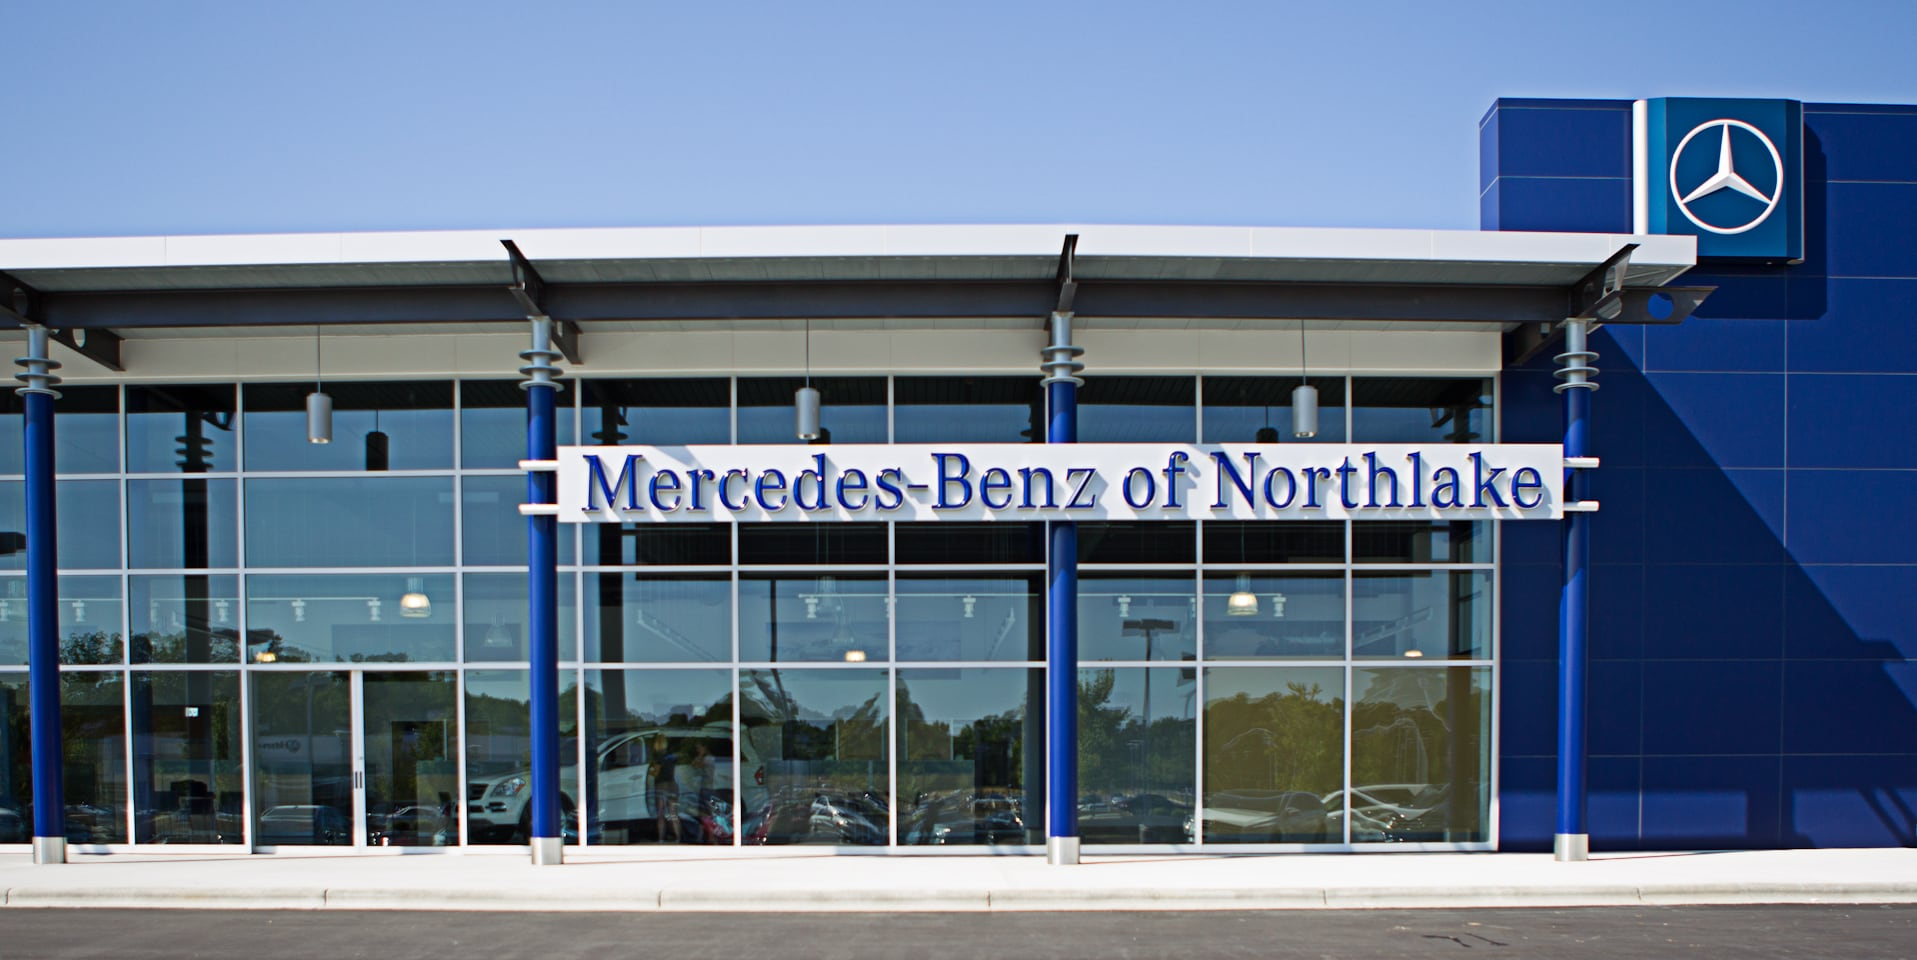 About mercedes benz of northlake new mercedes benz for Mercedes benz dealer northern blvd